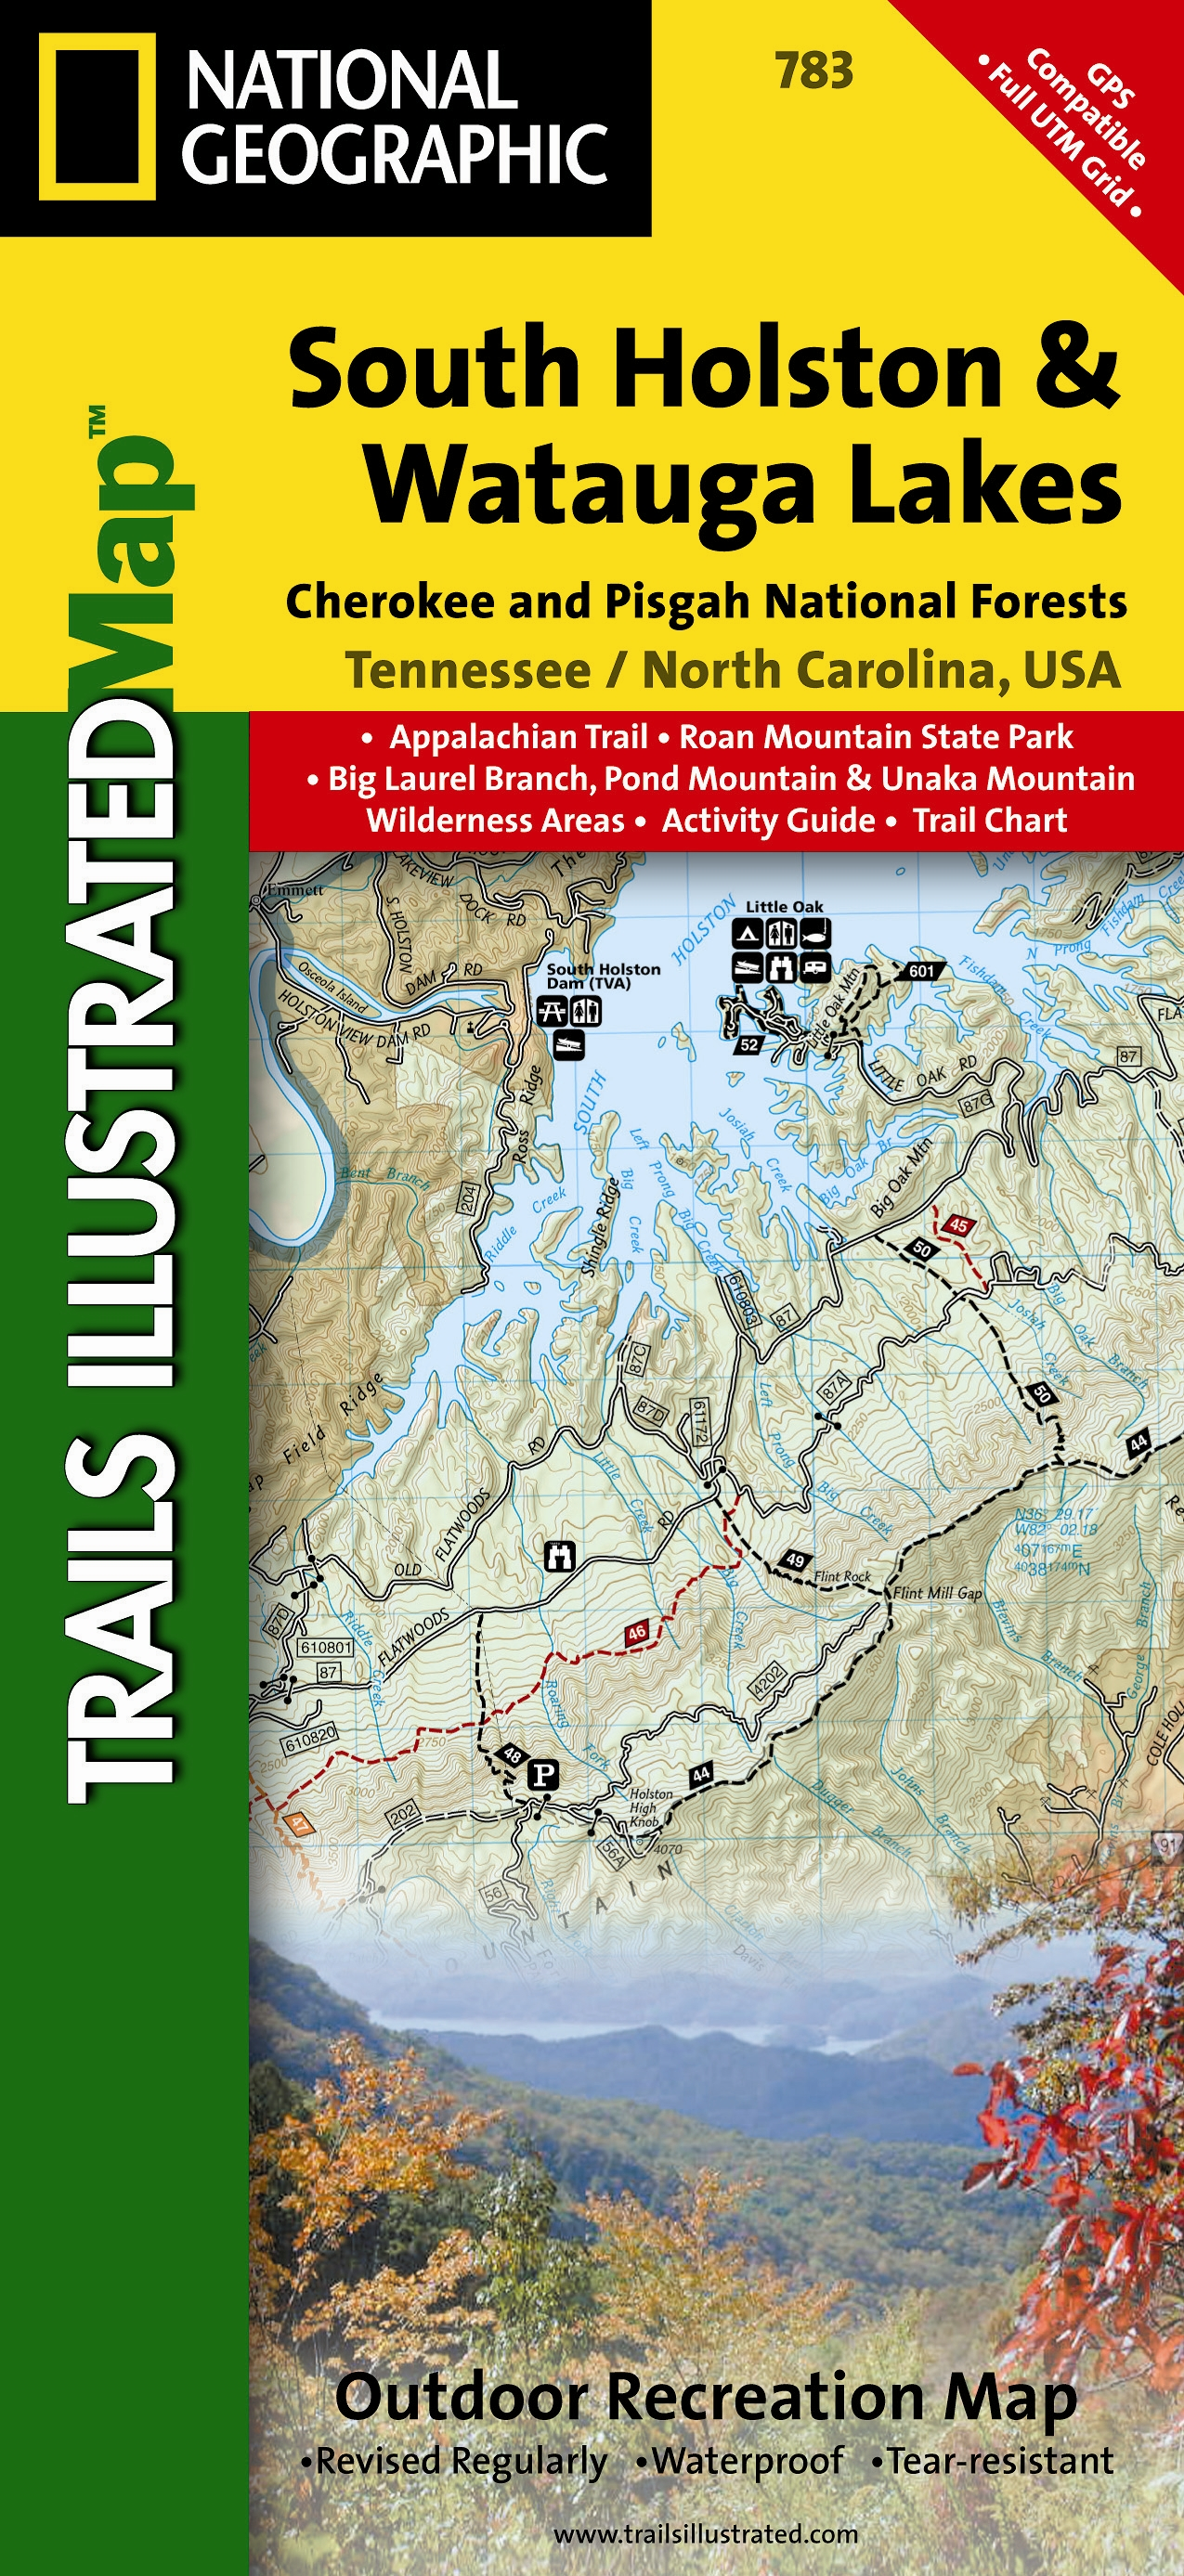 Trails Illustrated Maps Highland Mapping - Trails illustrated maps